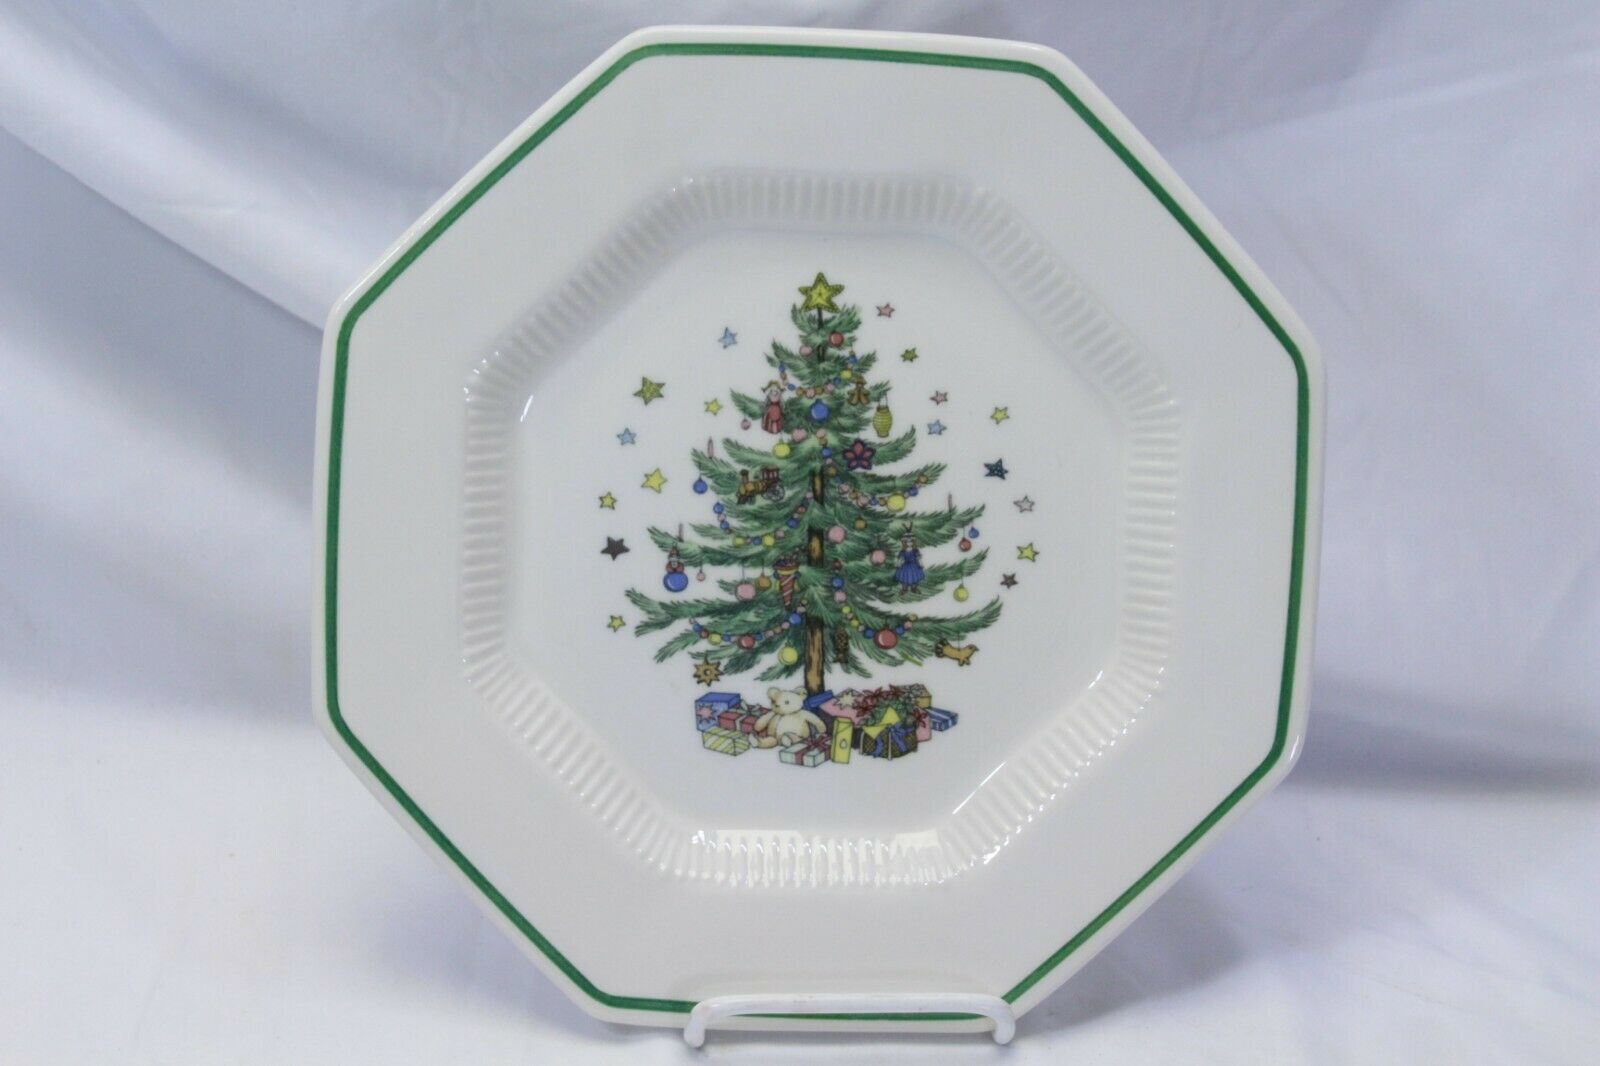 Nikko Christmastime 6 Dinner Plates 4 Salad Plates Lot of 10 image 4